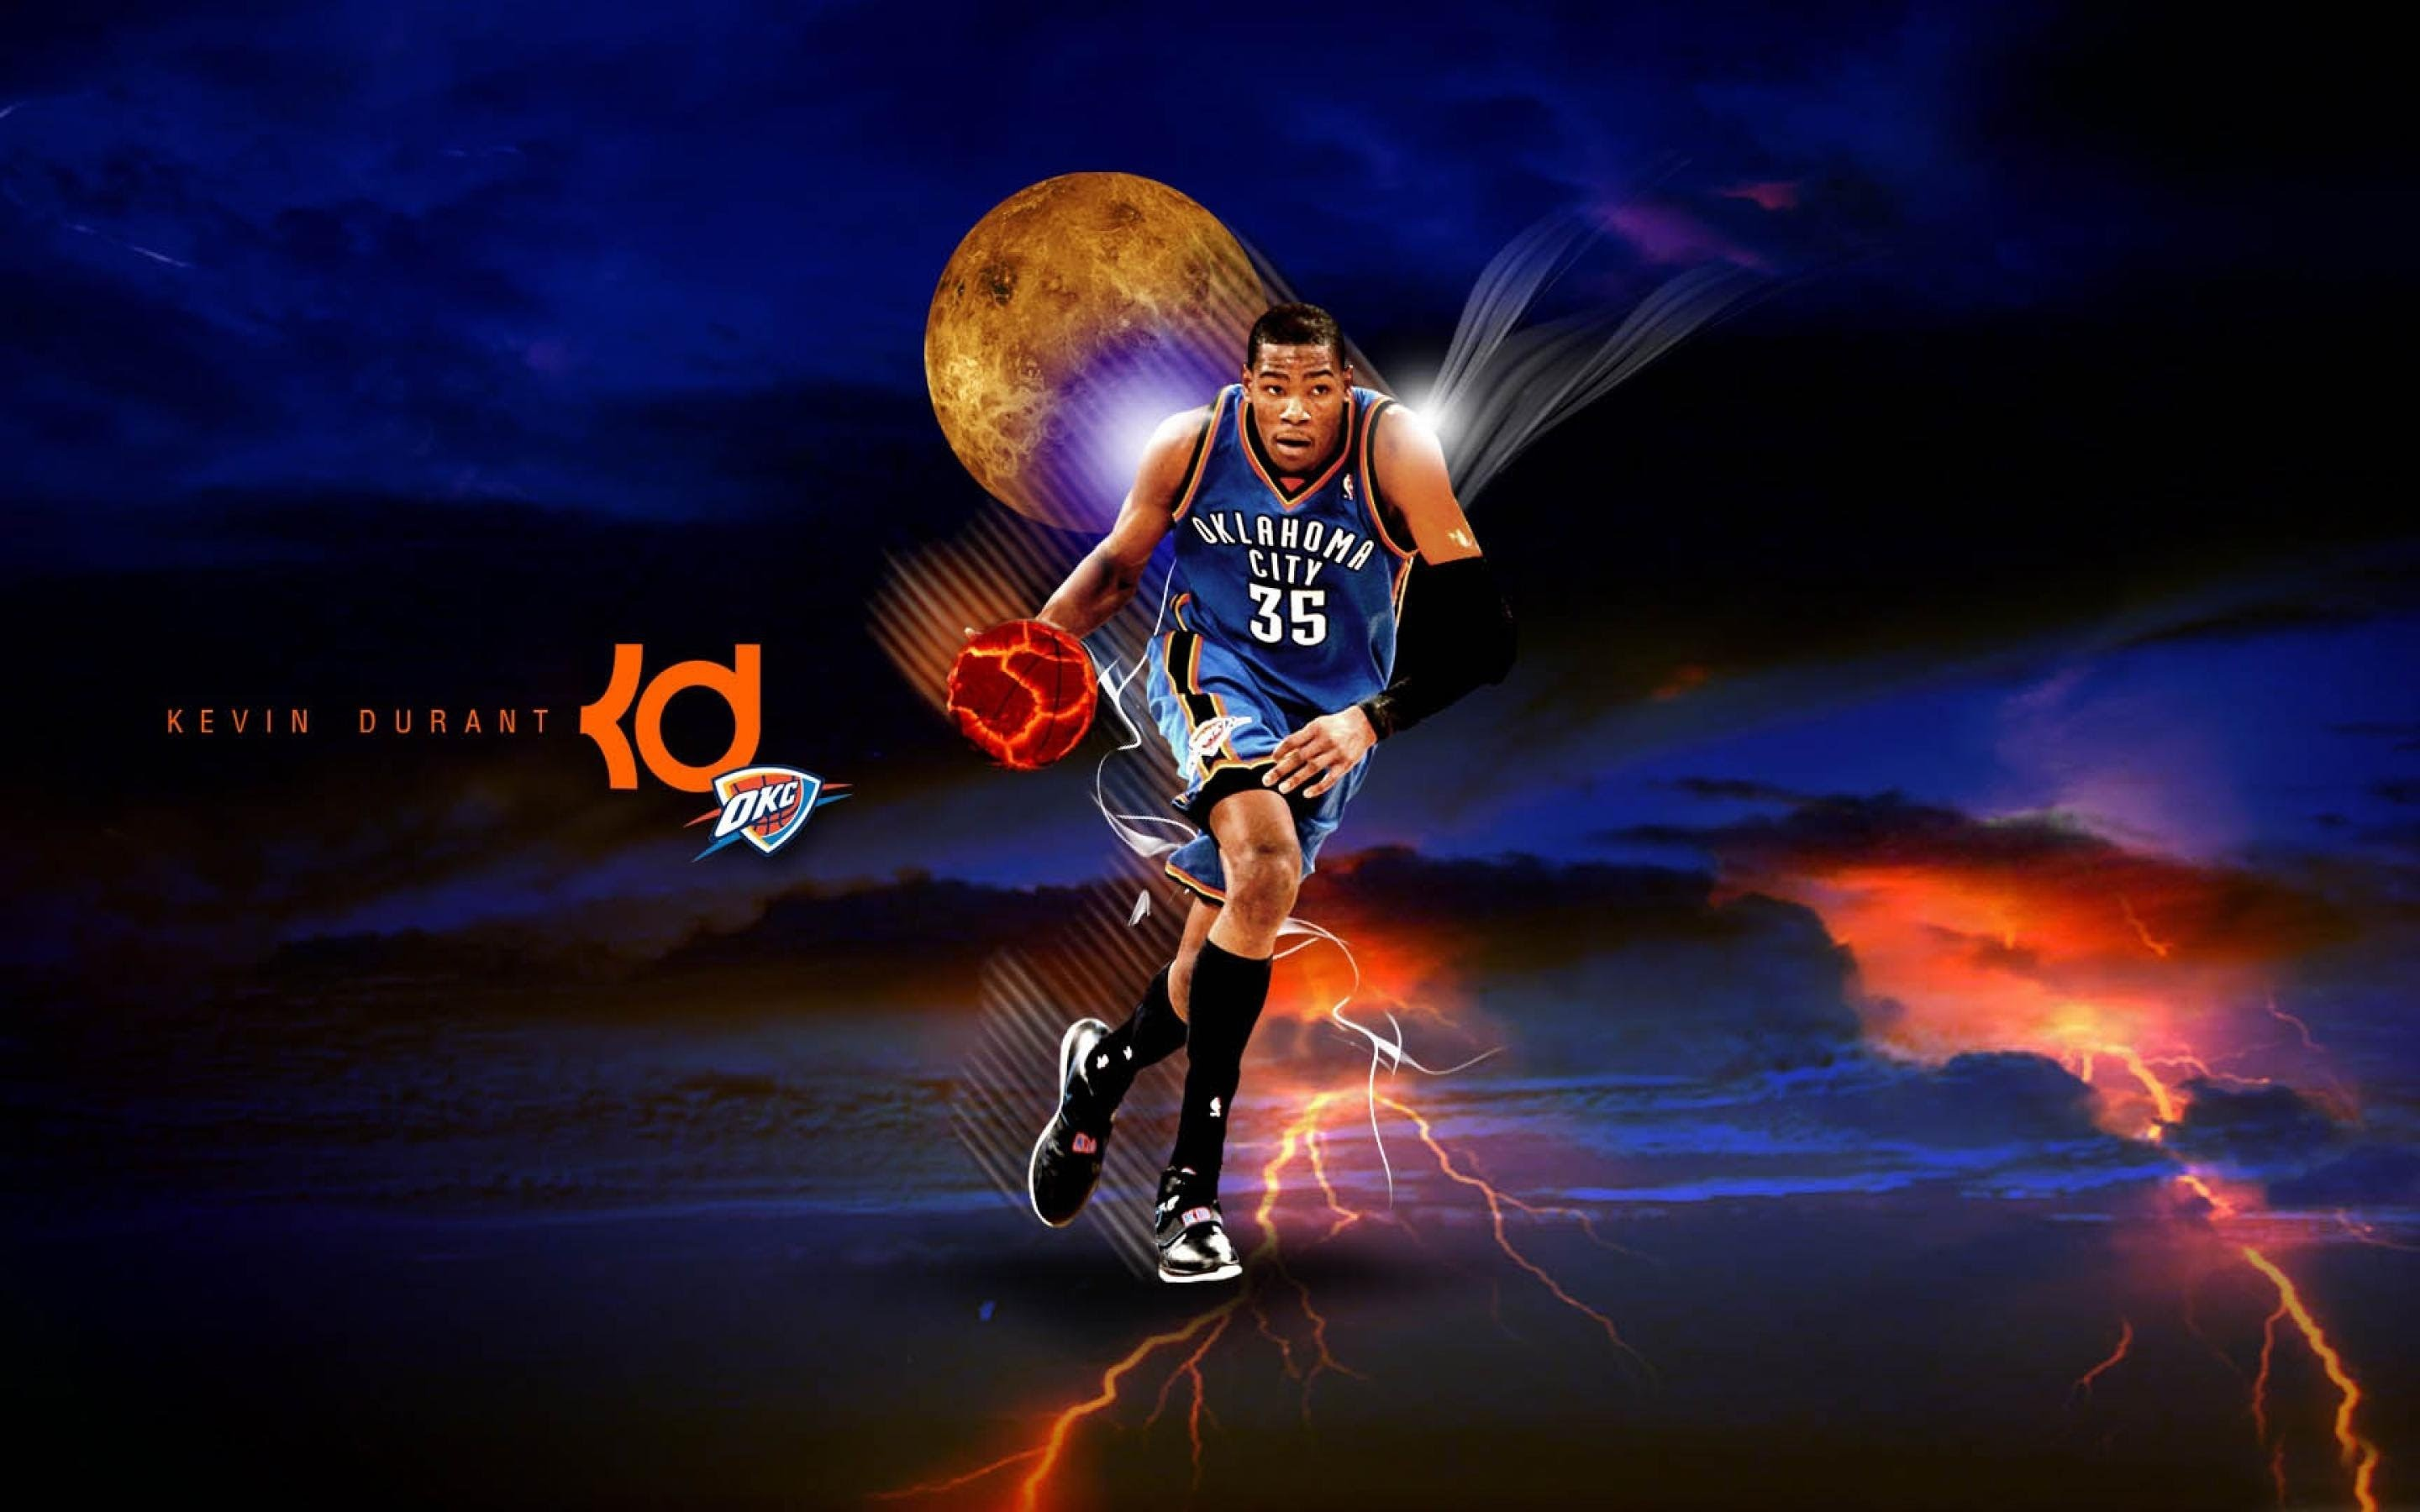 Kevin Durant Dunk Wallpapers 2015 – Wallpaper Cave